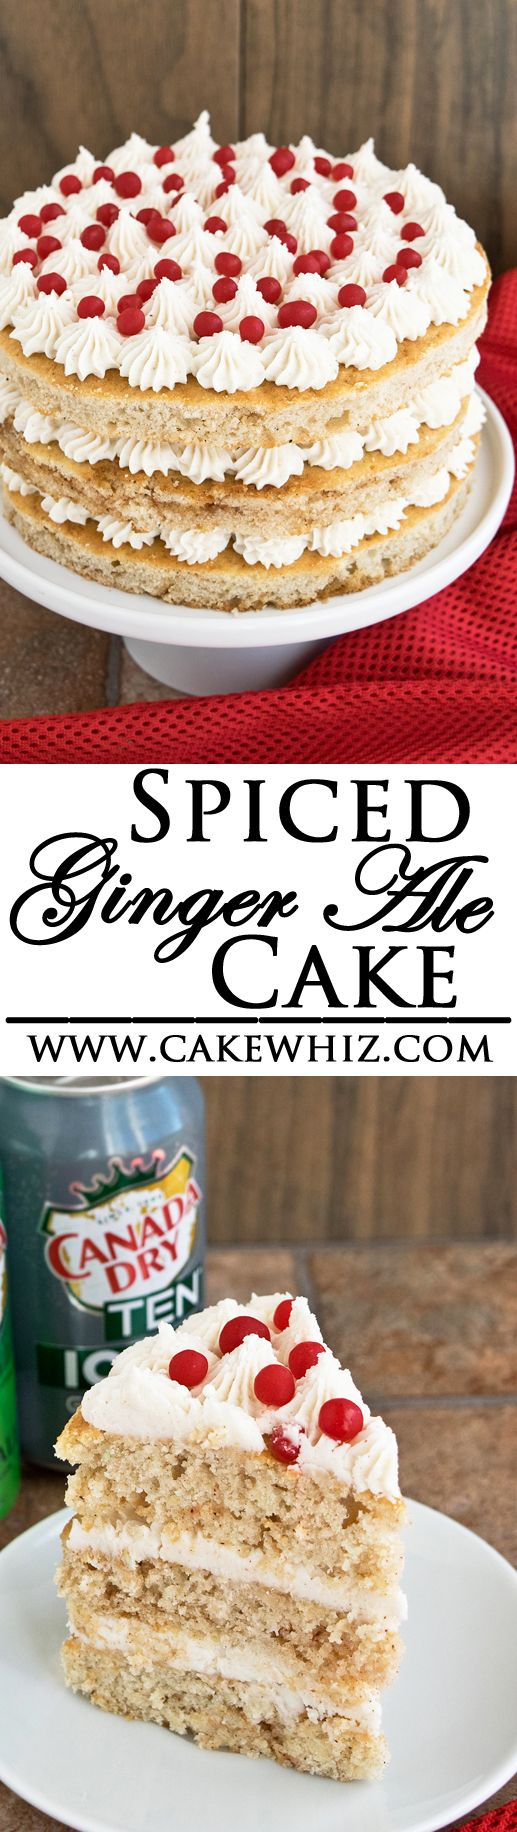 This is the best SPICED GINGER ALE CAKE ever for serving during the holiday season! Made with freshly grated ginger and ginger ale and packed with lots of wonderful spices. From cakewhiz.com #BrighTENtheSeason [Ad]